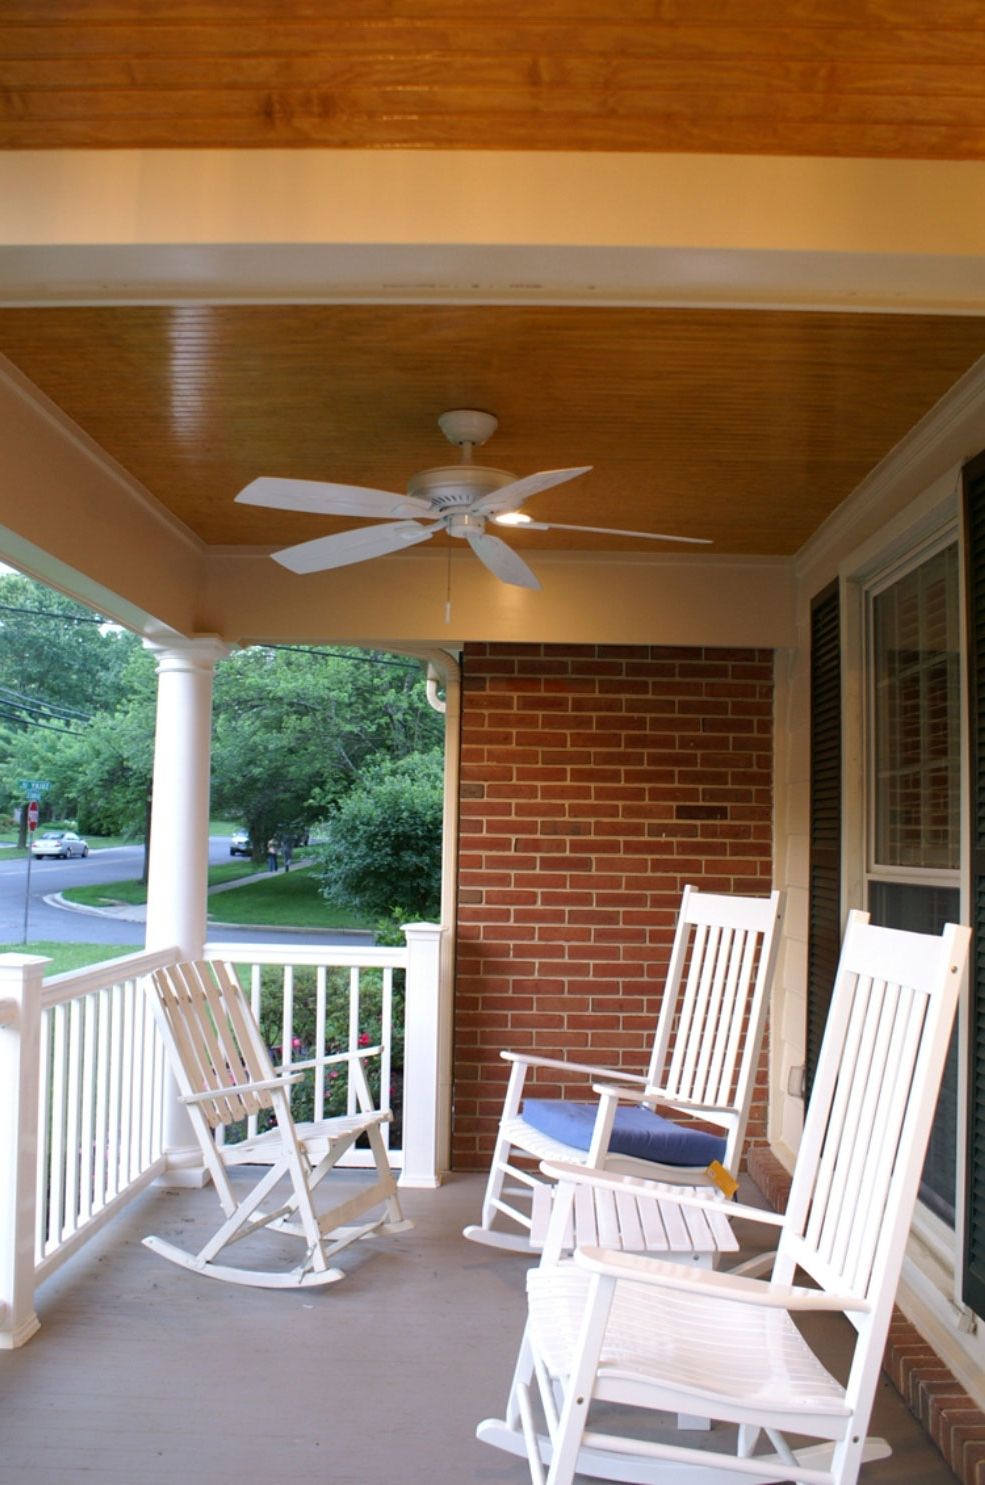 Outdoor Deck Ceiling Lights Regarding Recent Porch Ceiling : Outdoor Small Porch Ceiling Fans With Outdoor Porch (View 14 of 20)